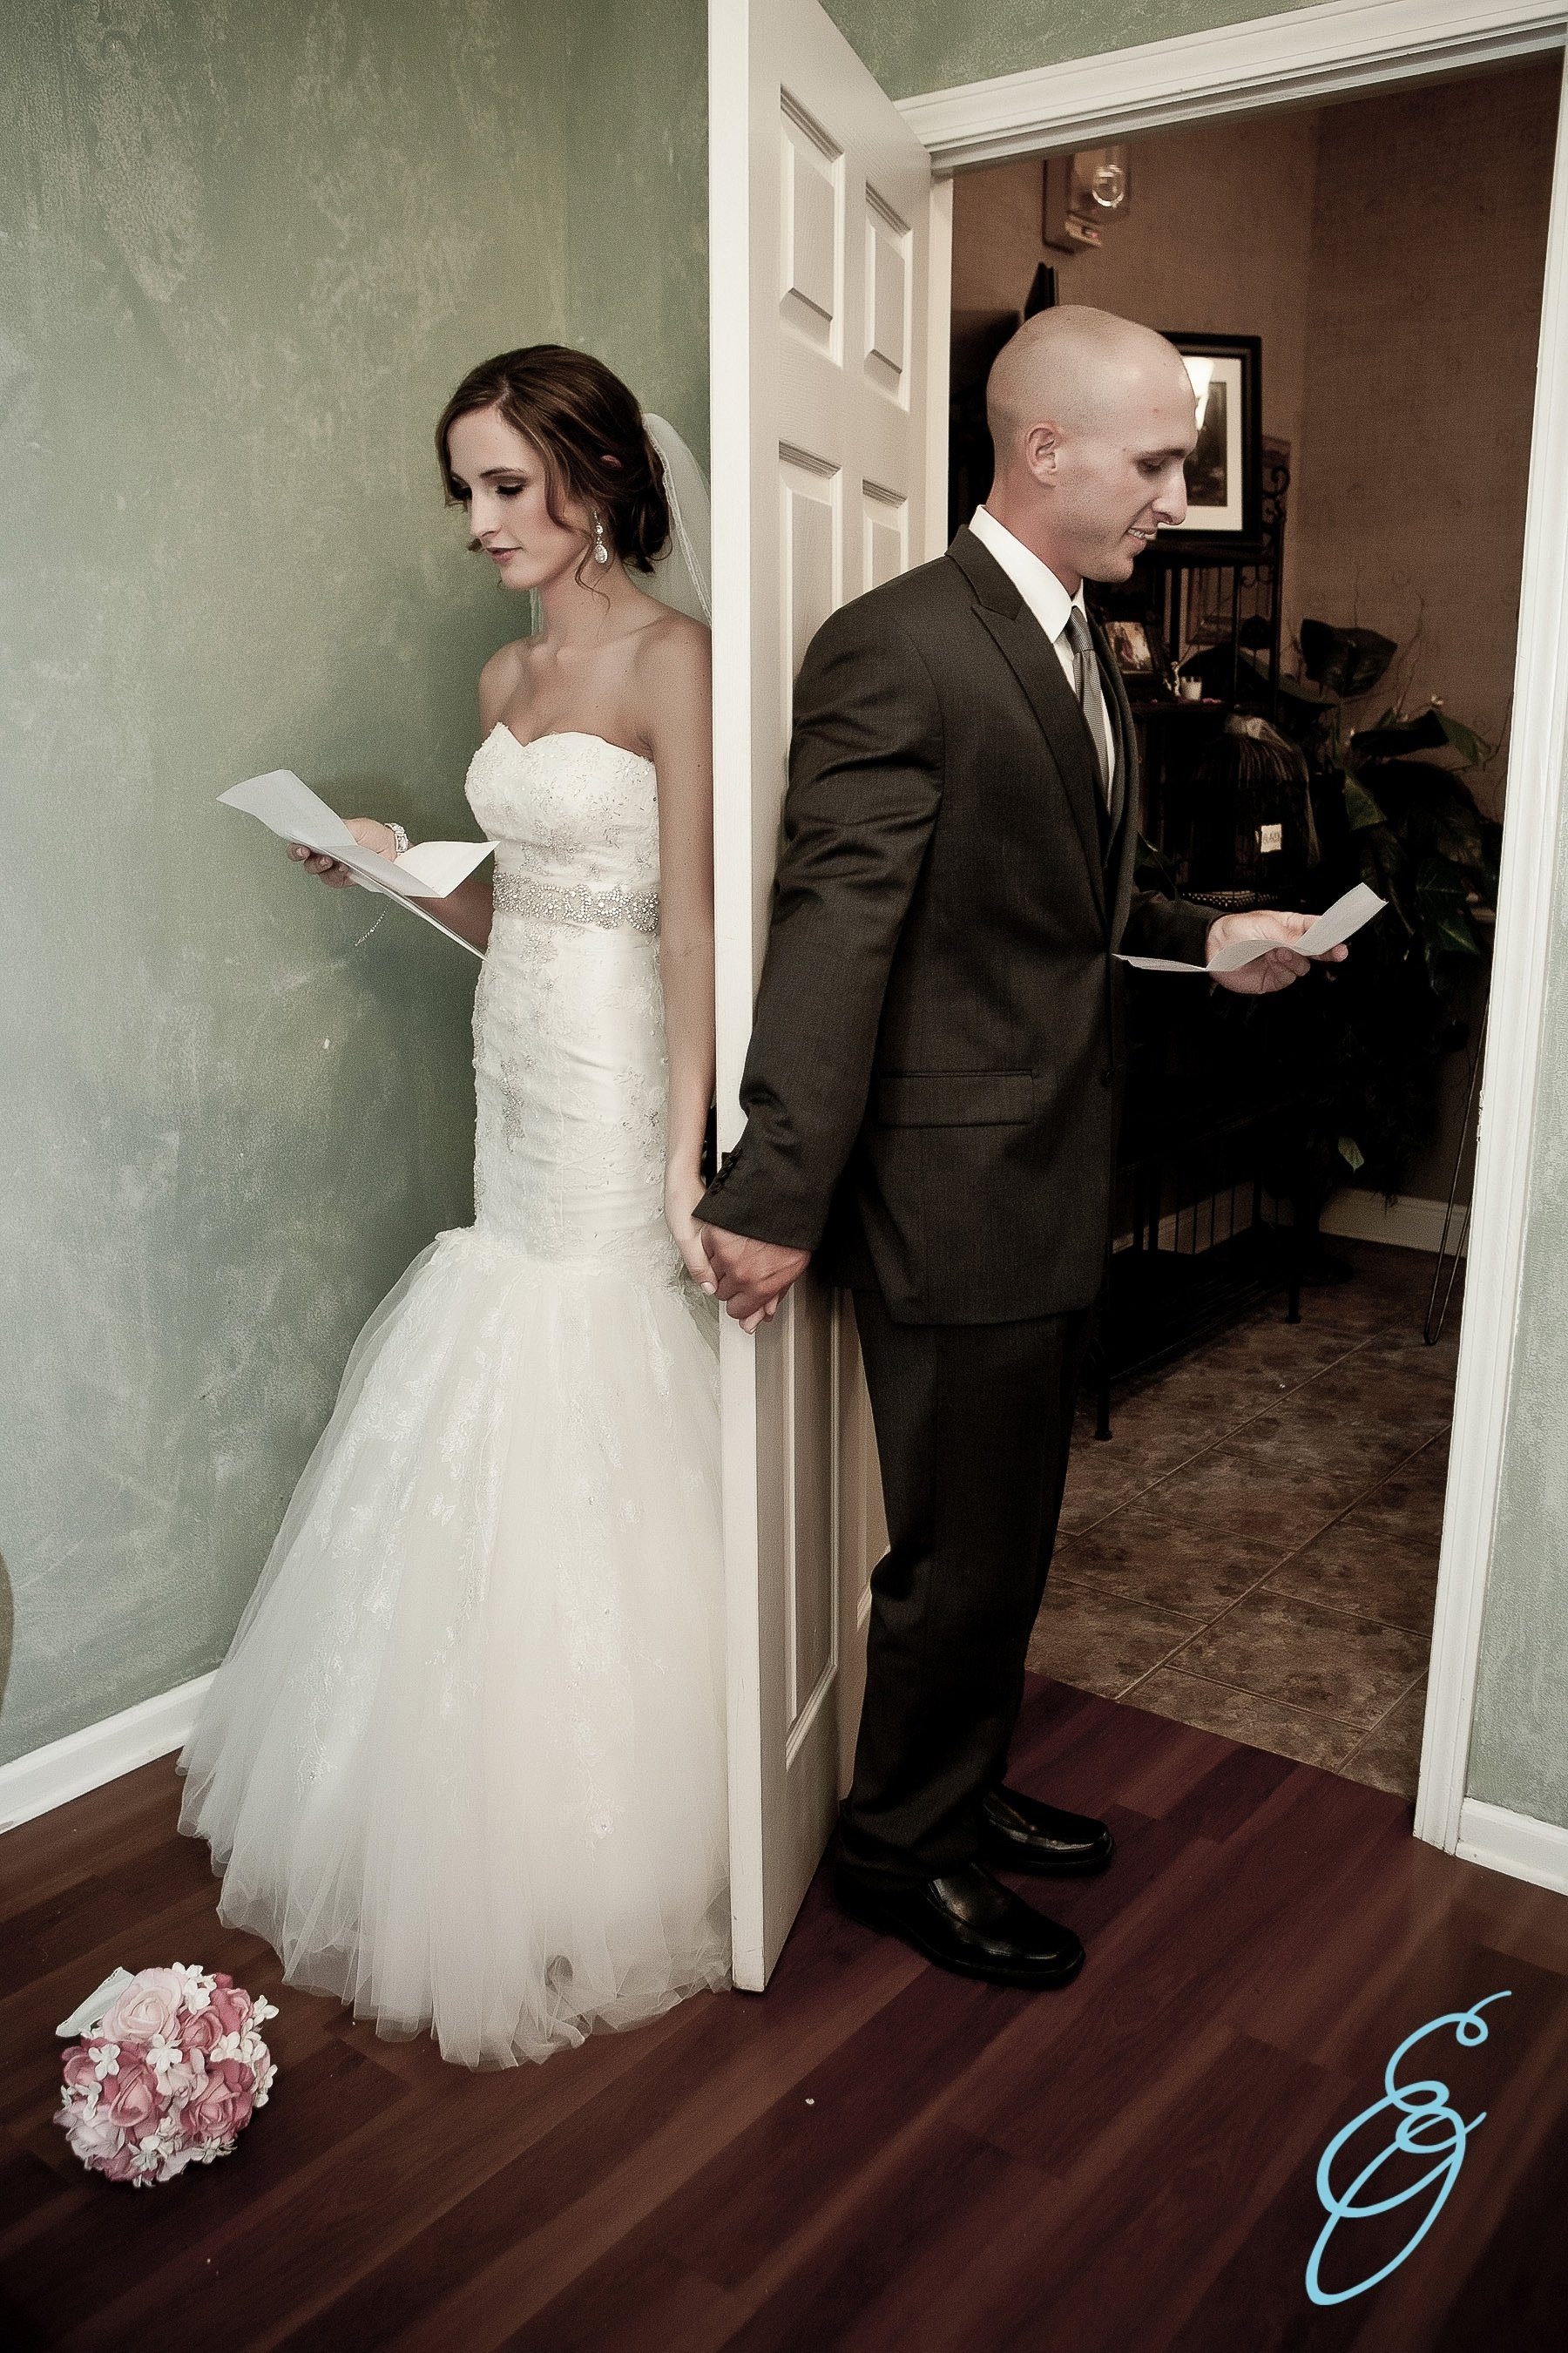 10 Attractive Bride And Groom Photo Ideas wedding photo bride groom door hold hands letter to bride groom 2020